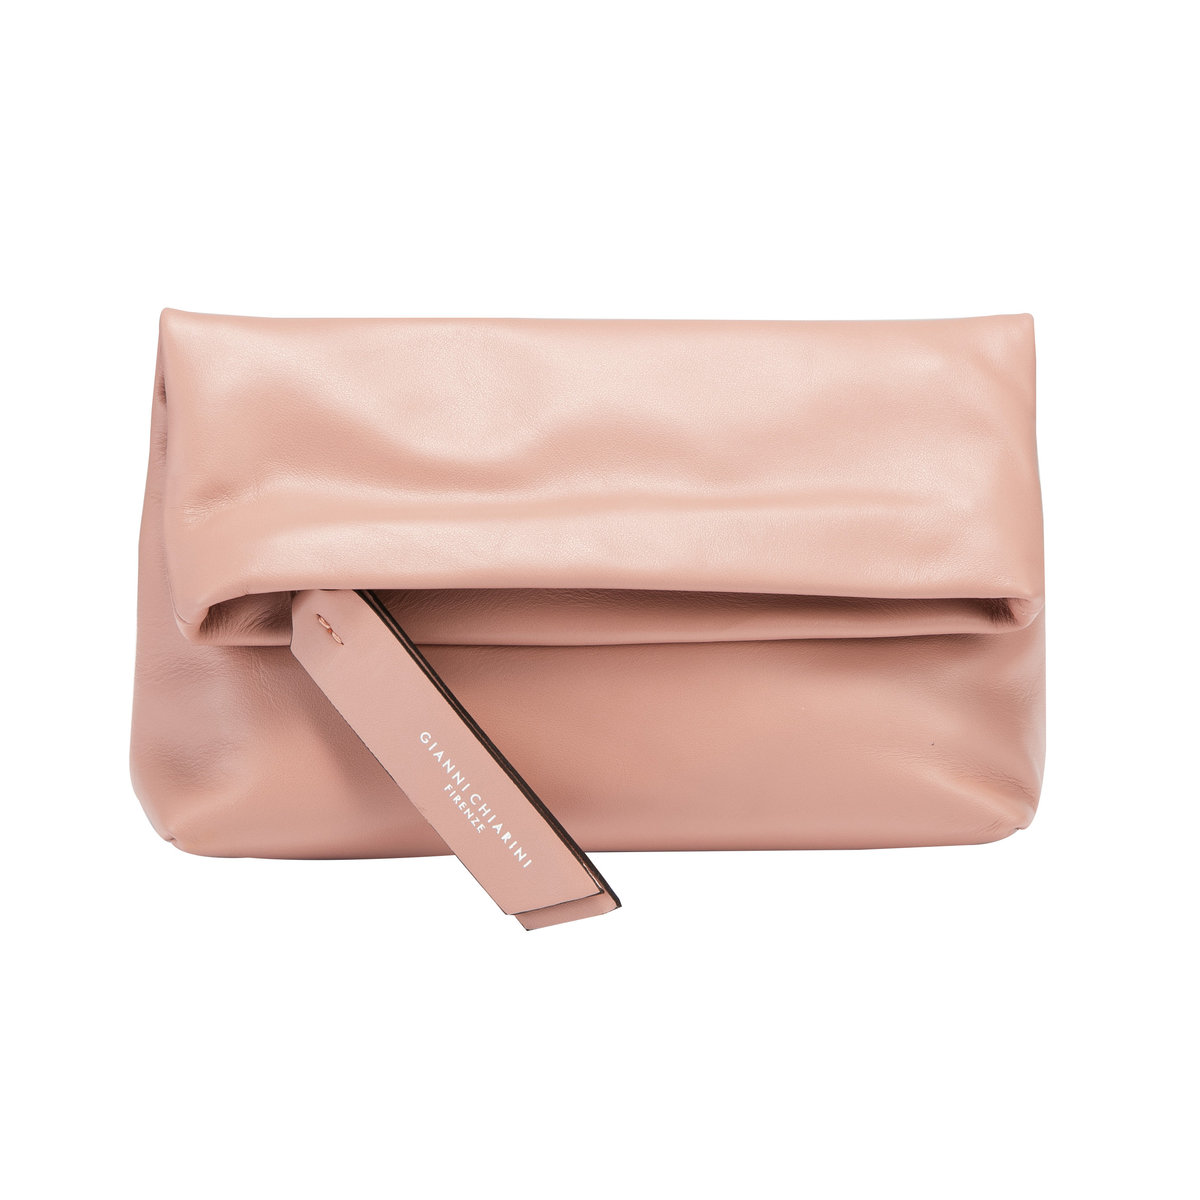 CHERRY SMALL CAMMEO LEATHER CLUTCH BAG